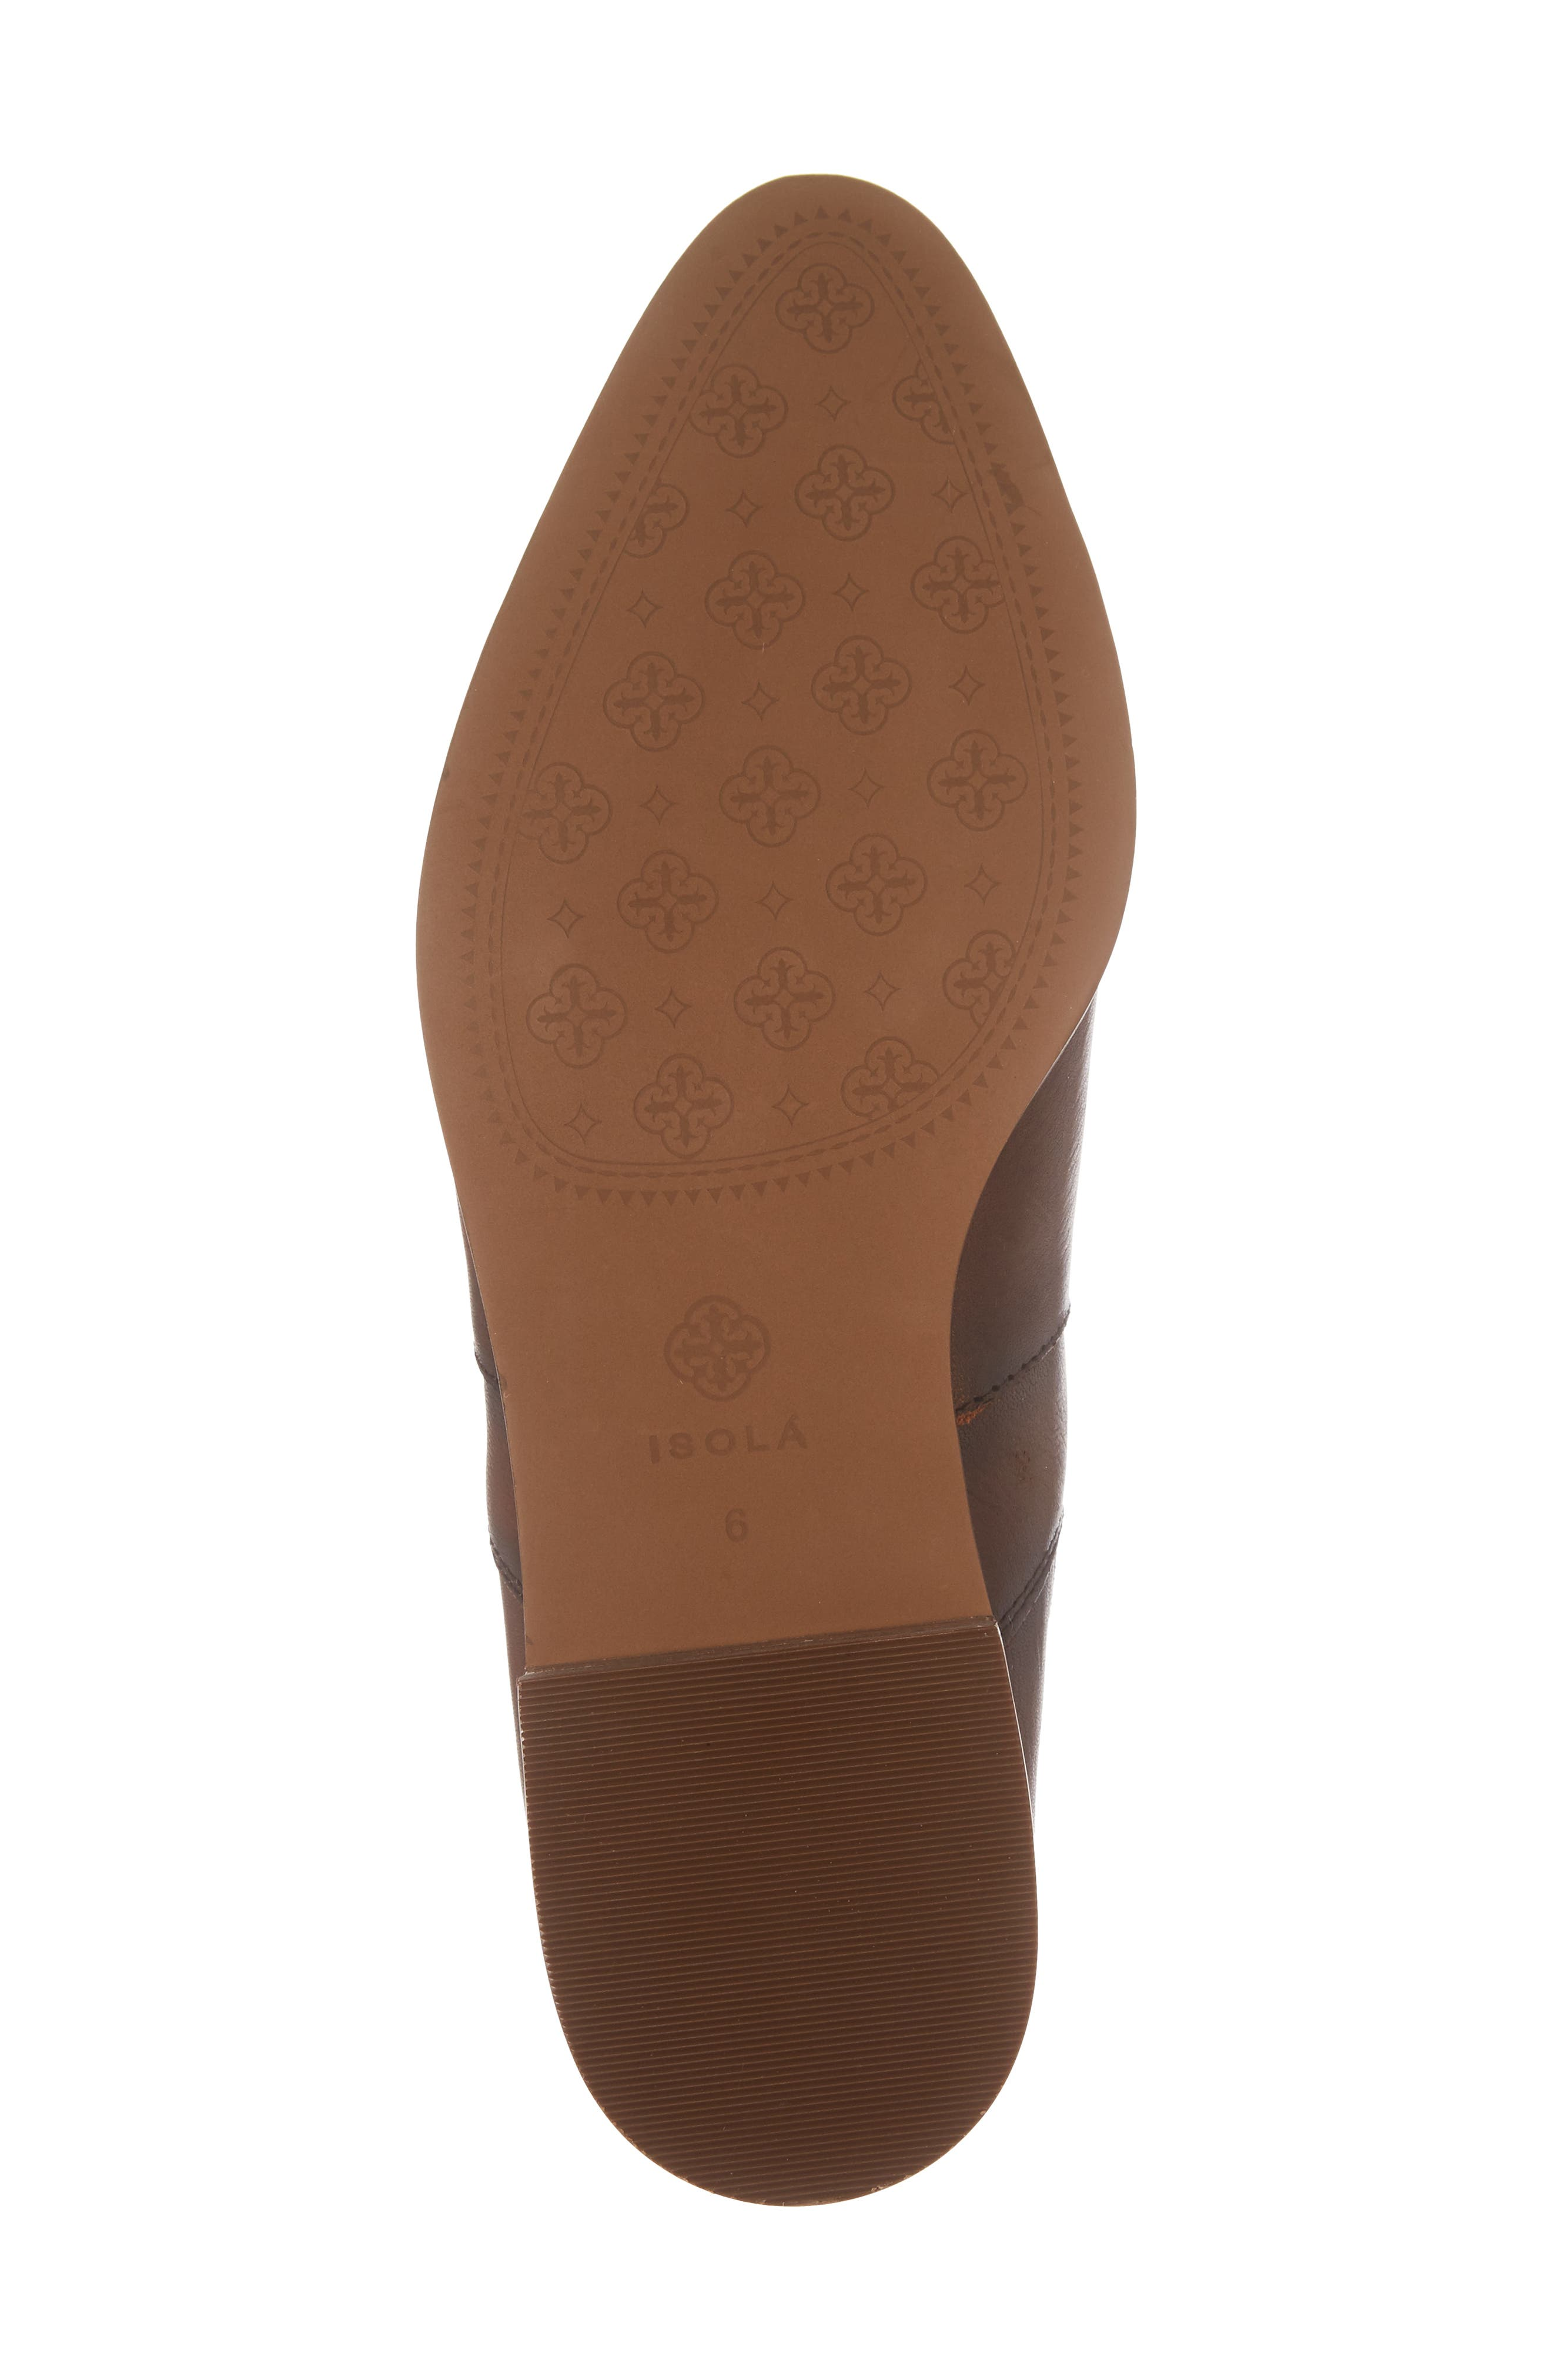 Mora Bootie,                             Alternate thumbnail 6, color,                             Whiskey Leather